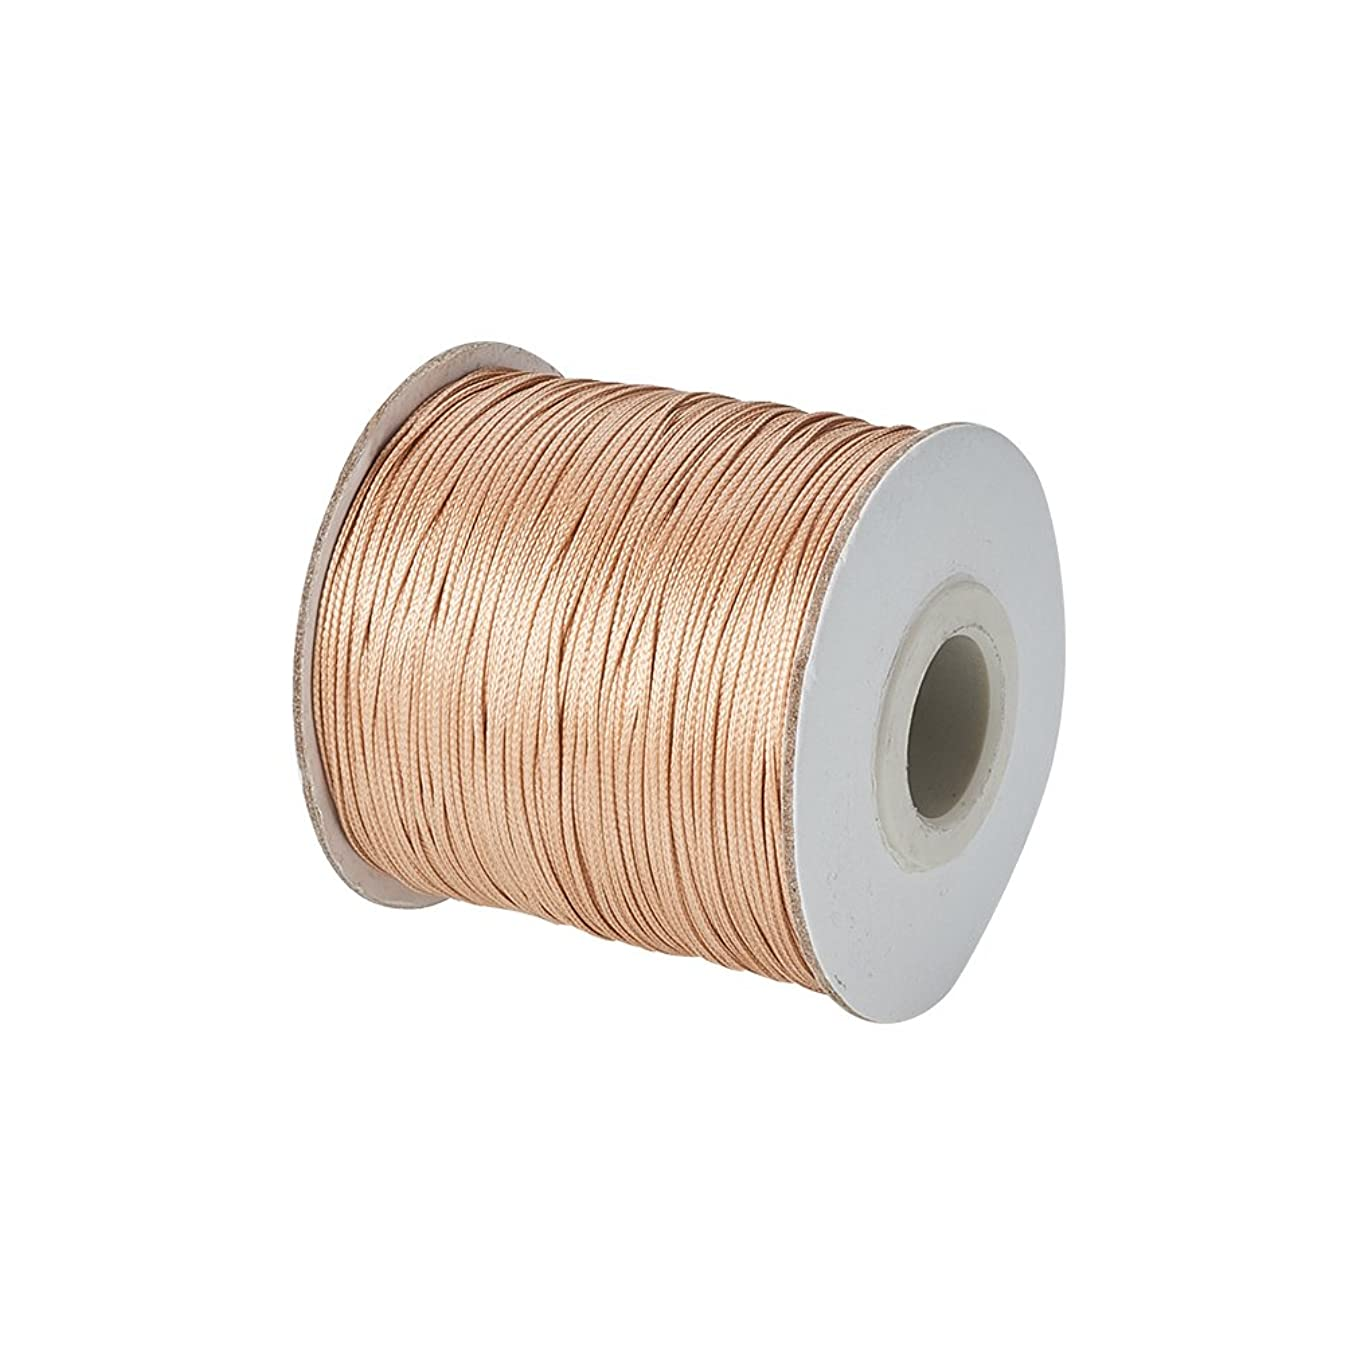 NBEADS 185yards/roll Leather Sewing Stitching Flat Waxed Polyester Cord, Bead Cord, Goldenrod, 0.5mm in Diameter